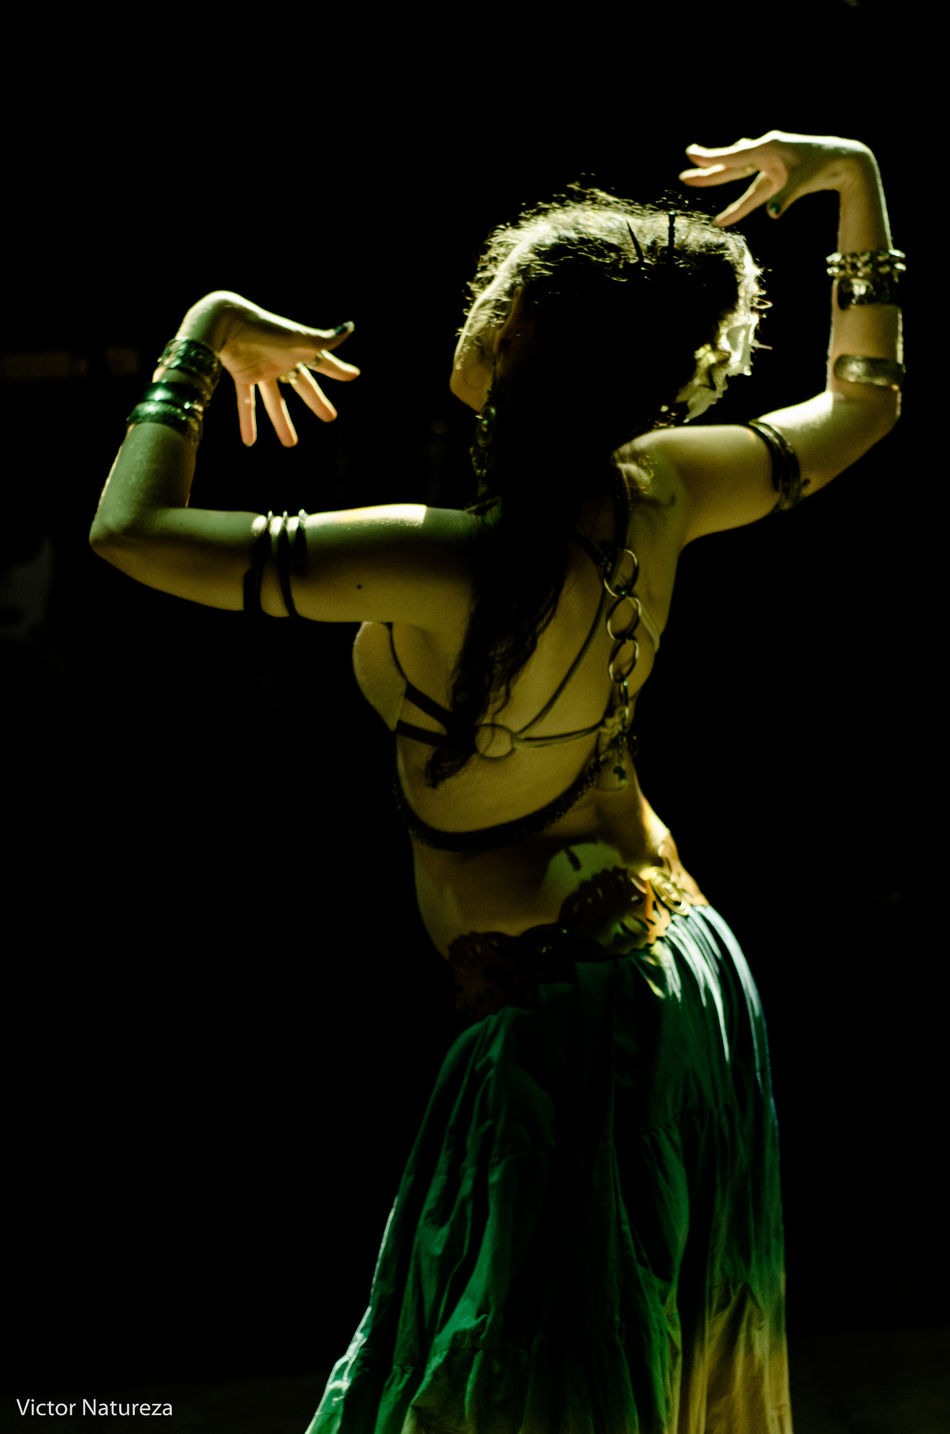 Dance Dança One Person Performance Sombra Luz Victornatureza Olharnatural Vitaonatureza Arts Culture And Entertainment